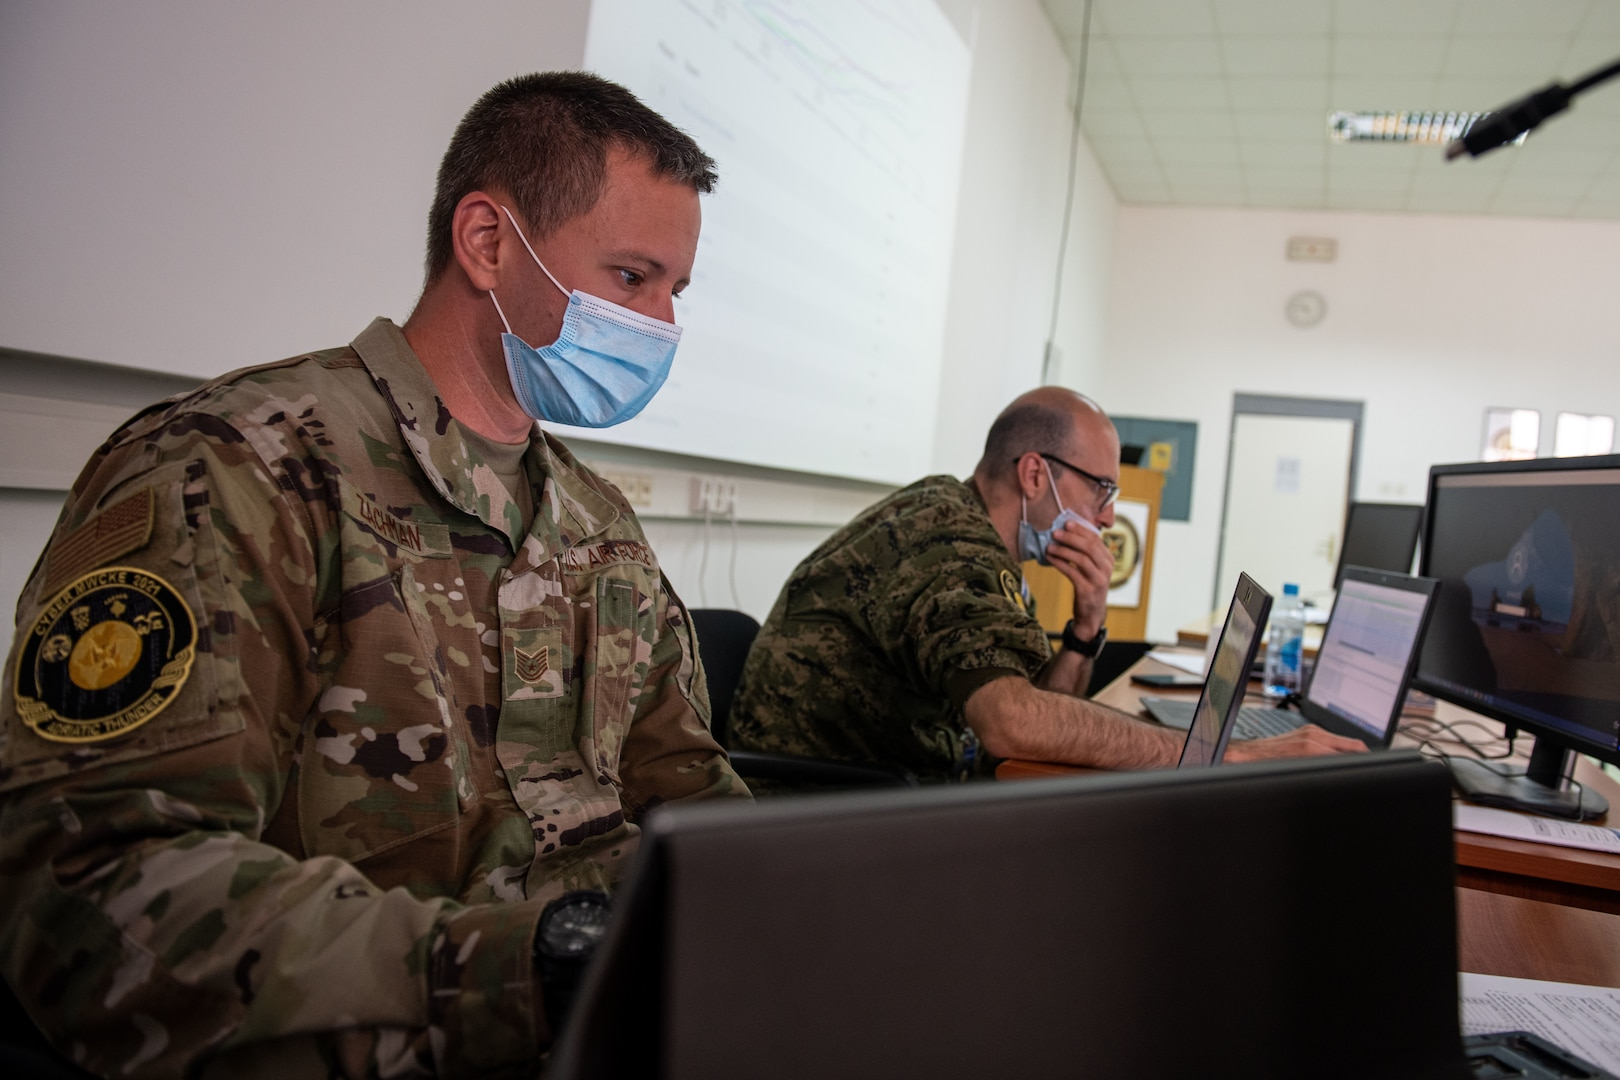 U.S. Air Force Tech Sgt. Jared Zachman, a cyber analyst with Minnesota National Guard Joint Force Headquarters Defensive Cyber Operations Element, works alongside Croatian Armed Forces service member 2nd Lt. Domagoj Volarevic during cyber training prior to the start of the joint cyber training exercise, Midwest Croatia Kosovo Exercise Adriatic Thunder at Dr. Franjo Tudman Croatian Military Academy, Zagreb, Croatia, on June 14, 2021.